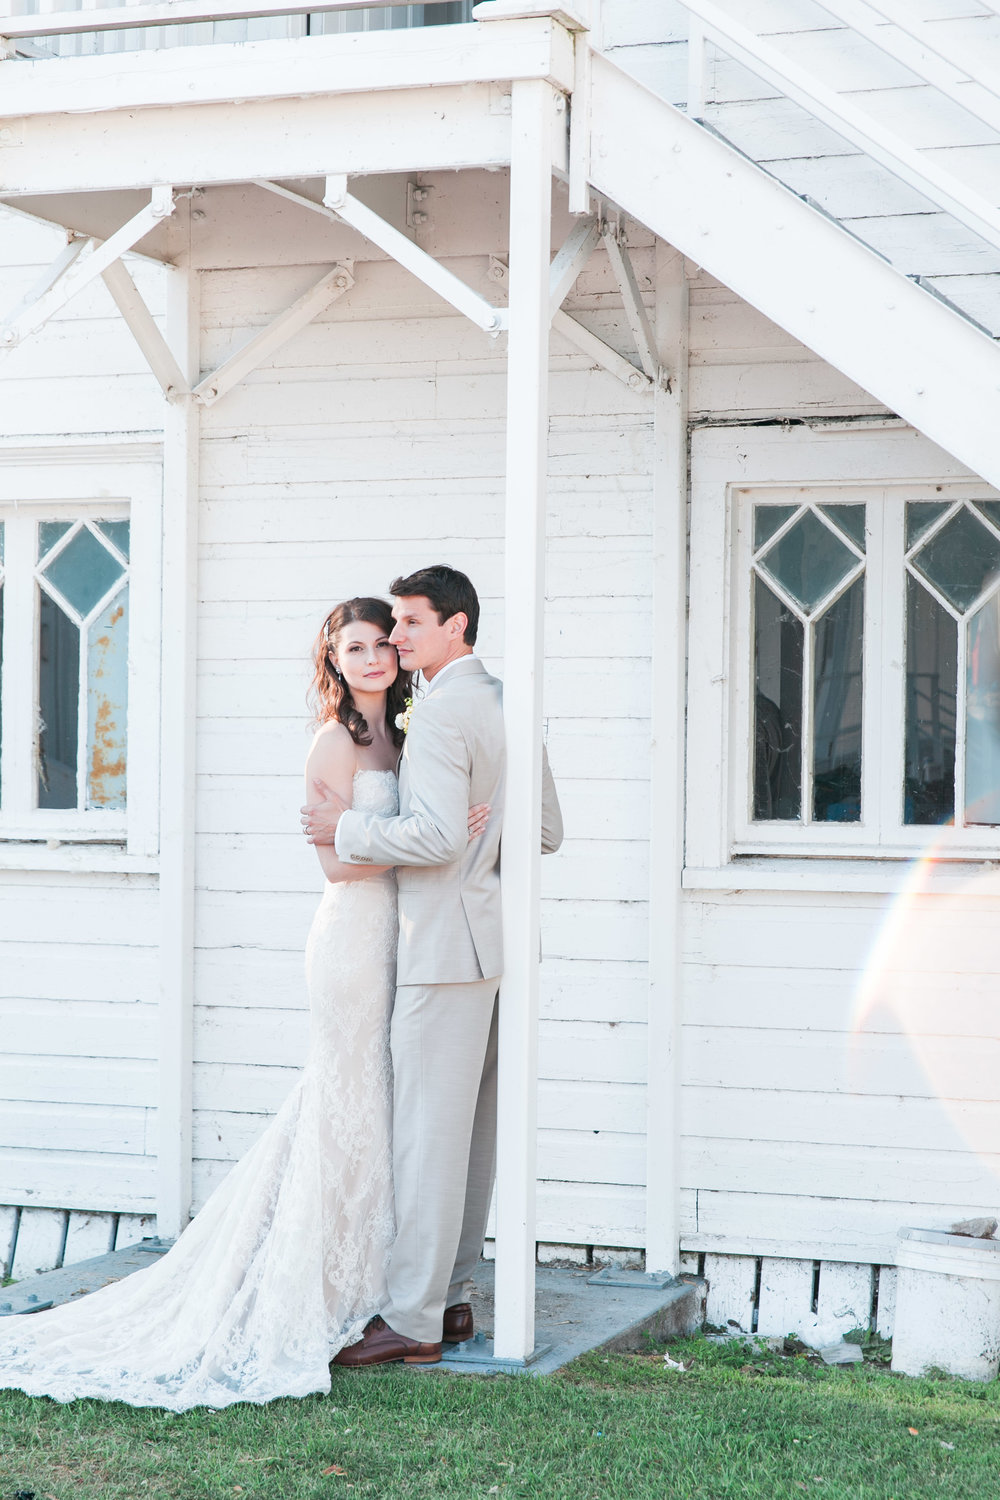 Bride and groom photos at the Royal Canadian Yacht Club